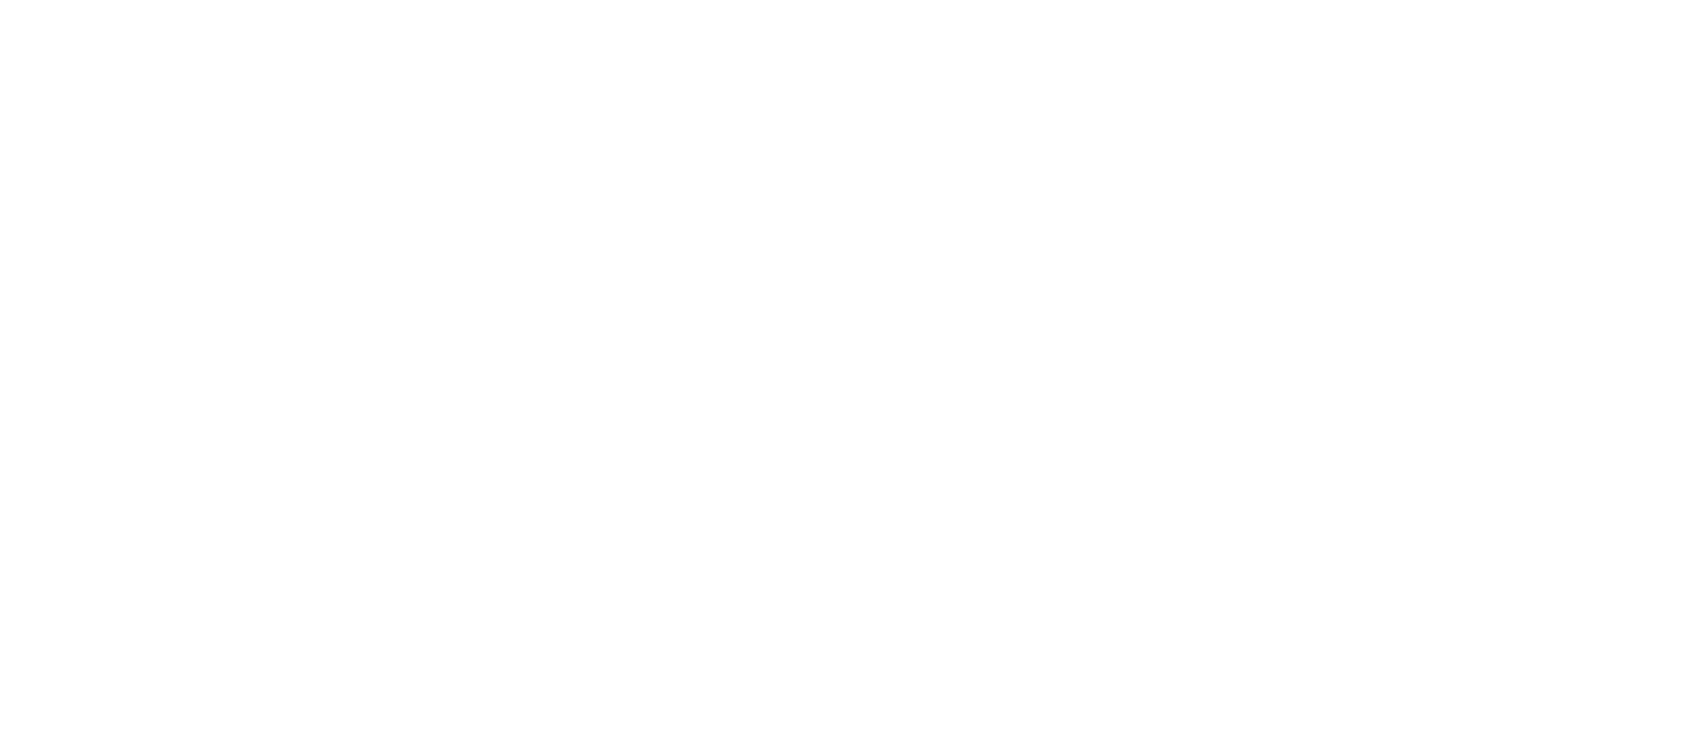 Hemet San Jacinto Valley Chamber of Commerce